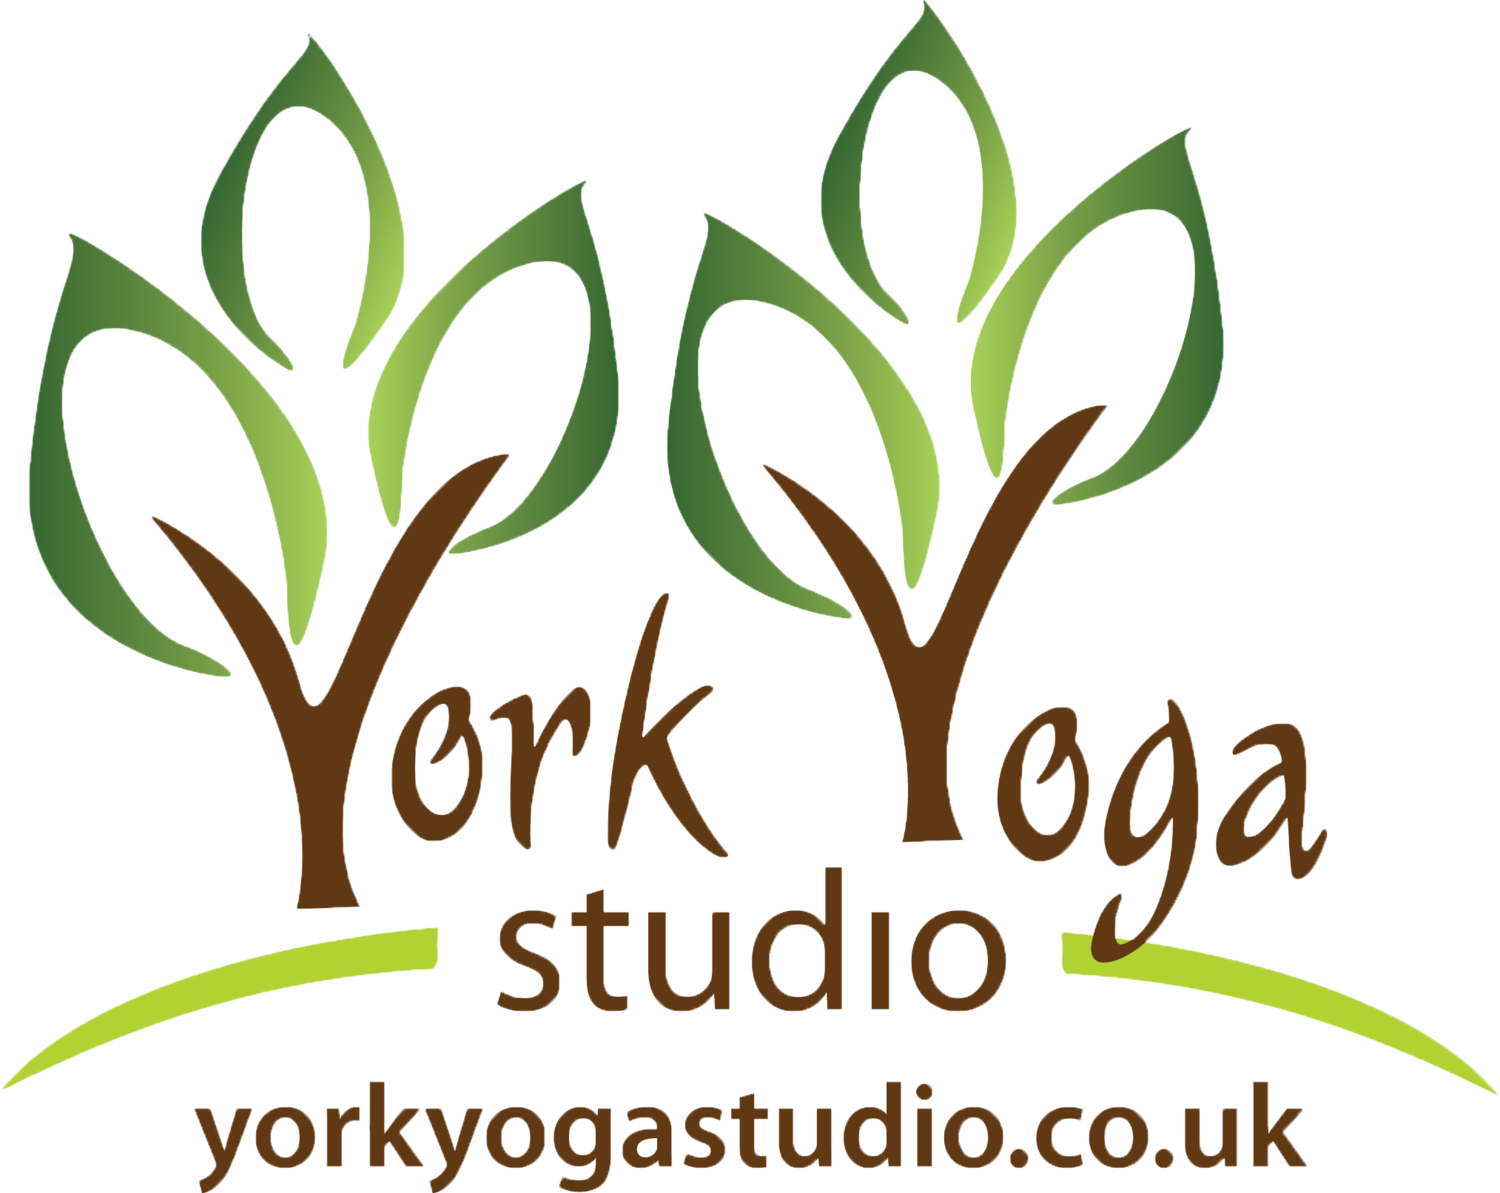 York Yoga Studio